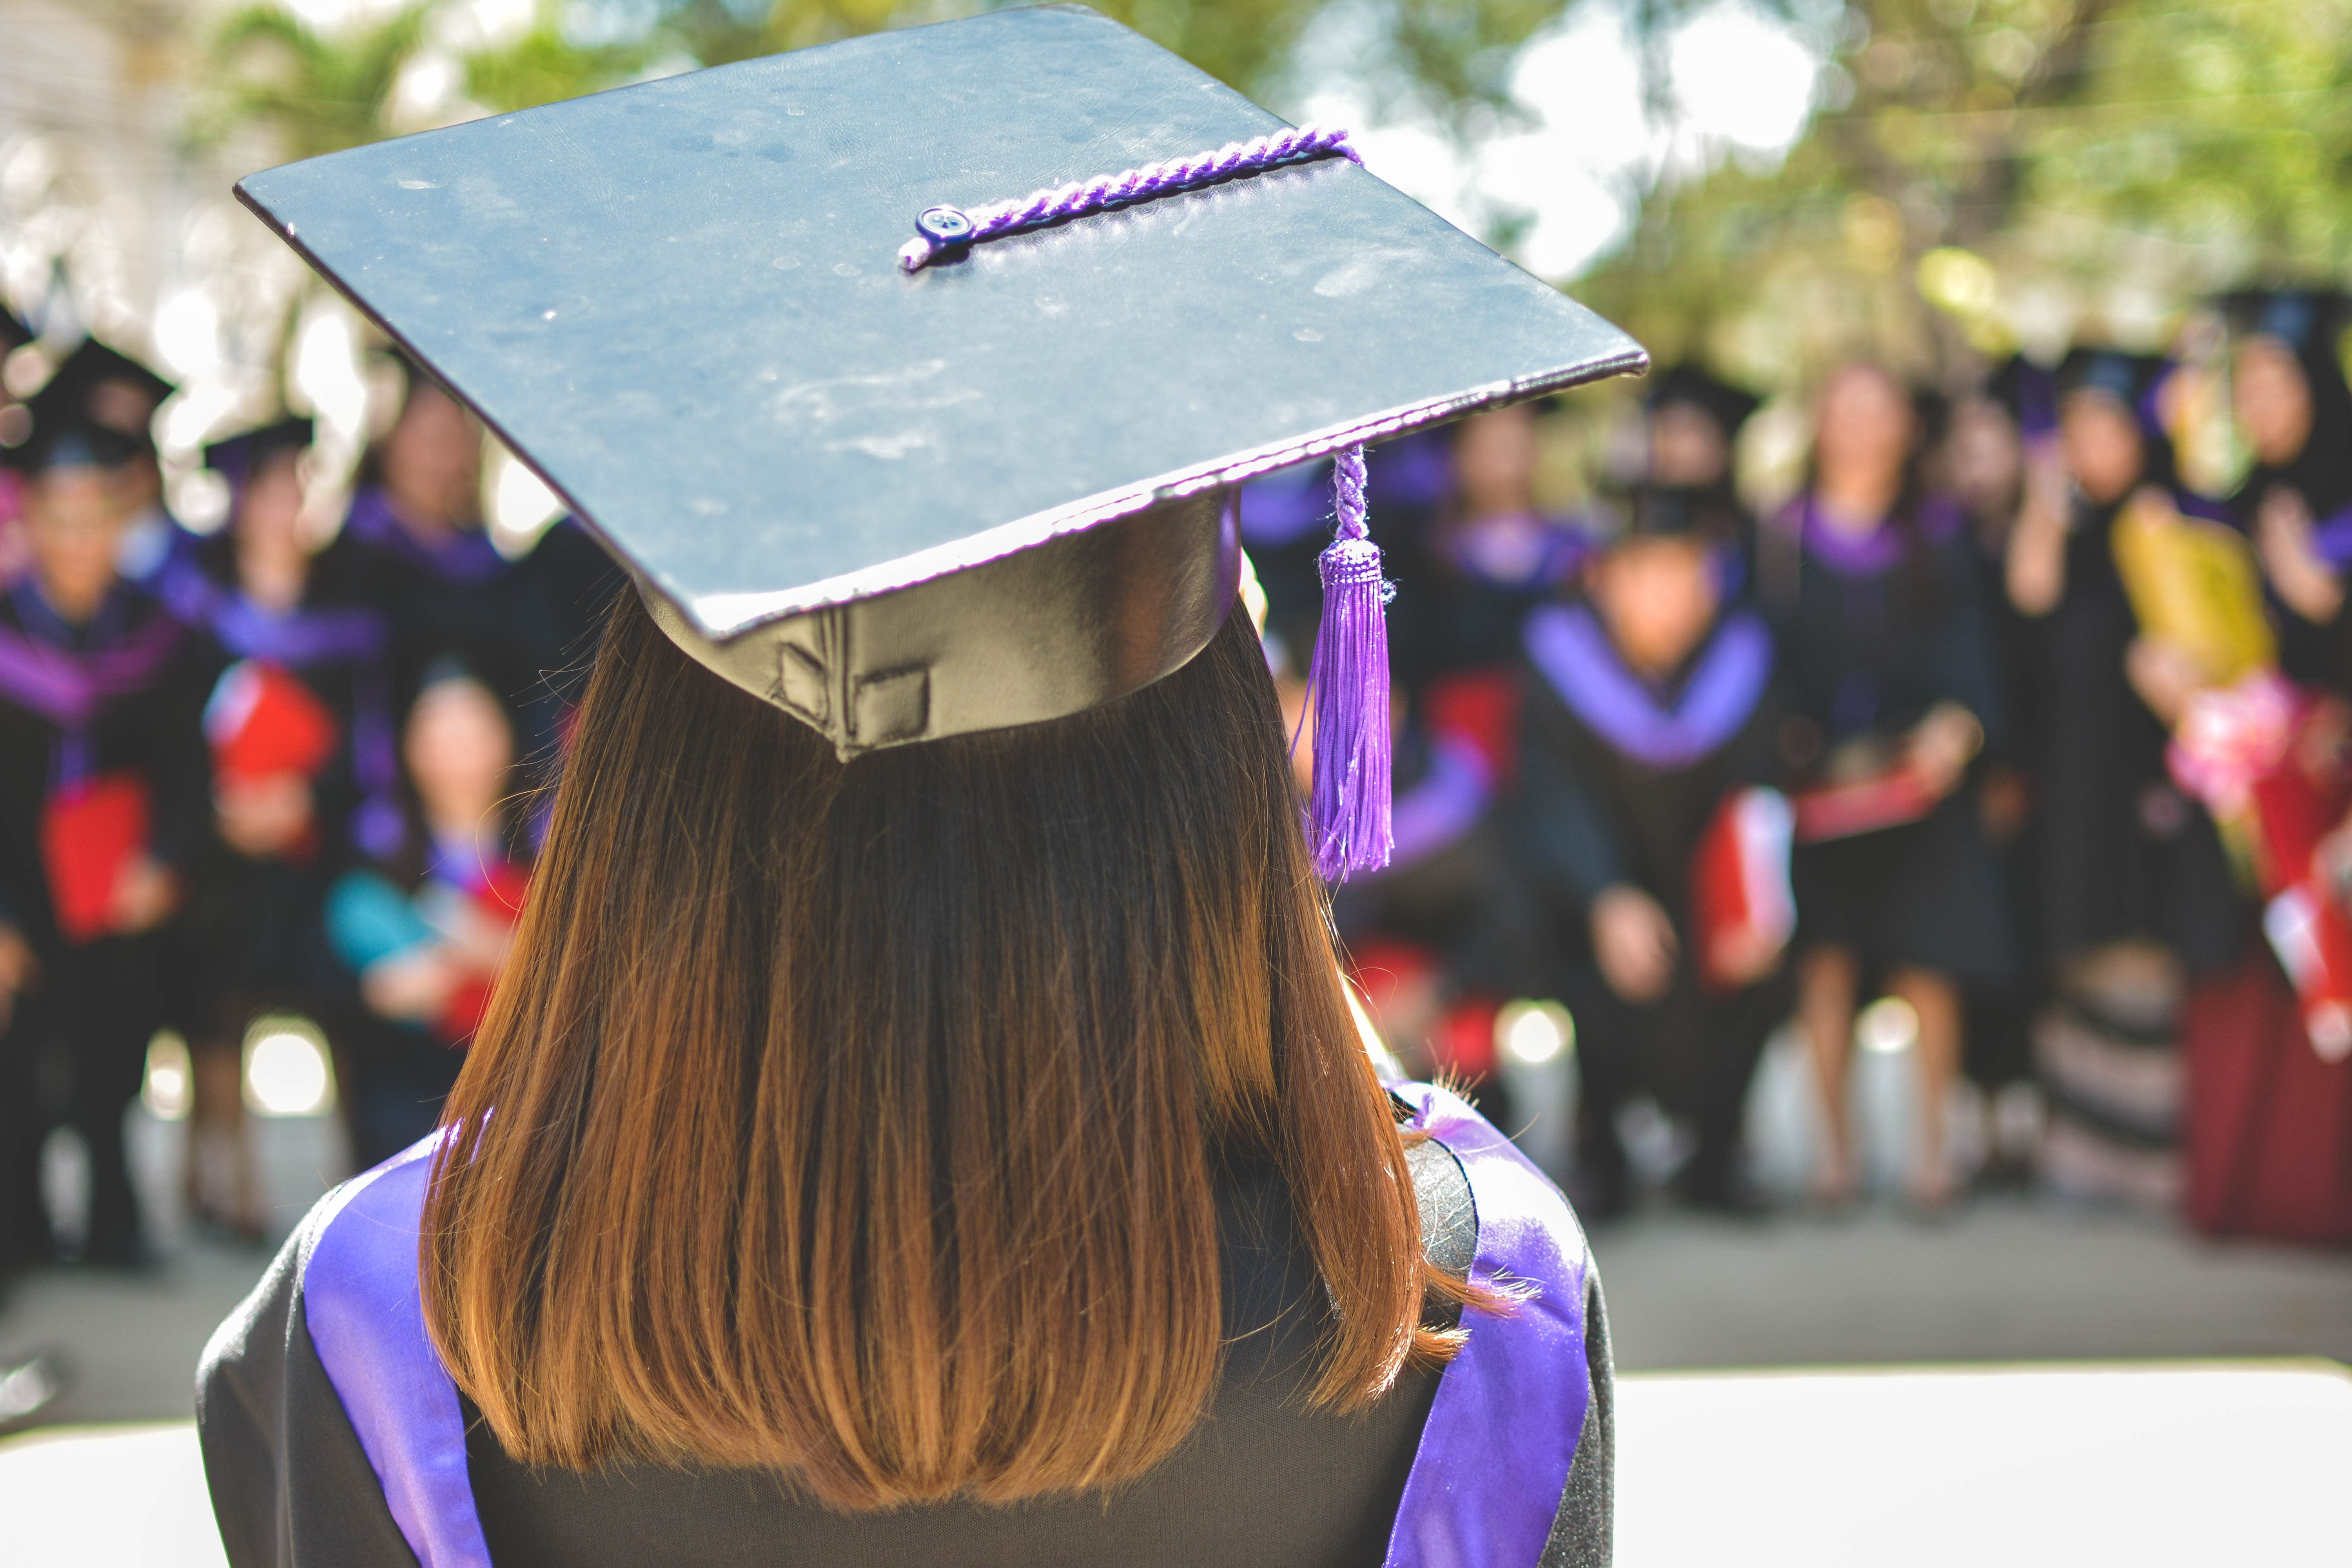 Graduates are leaving university with nearly £4,000 in extra debt